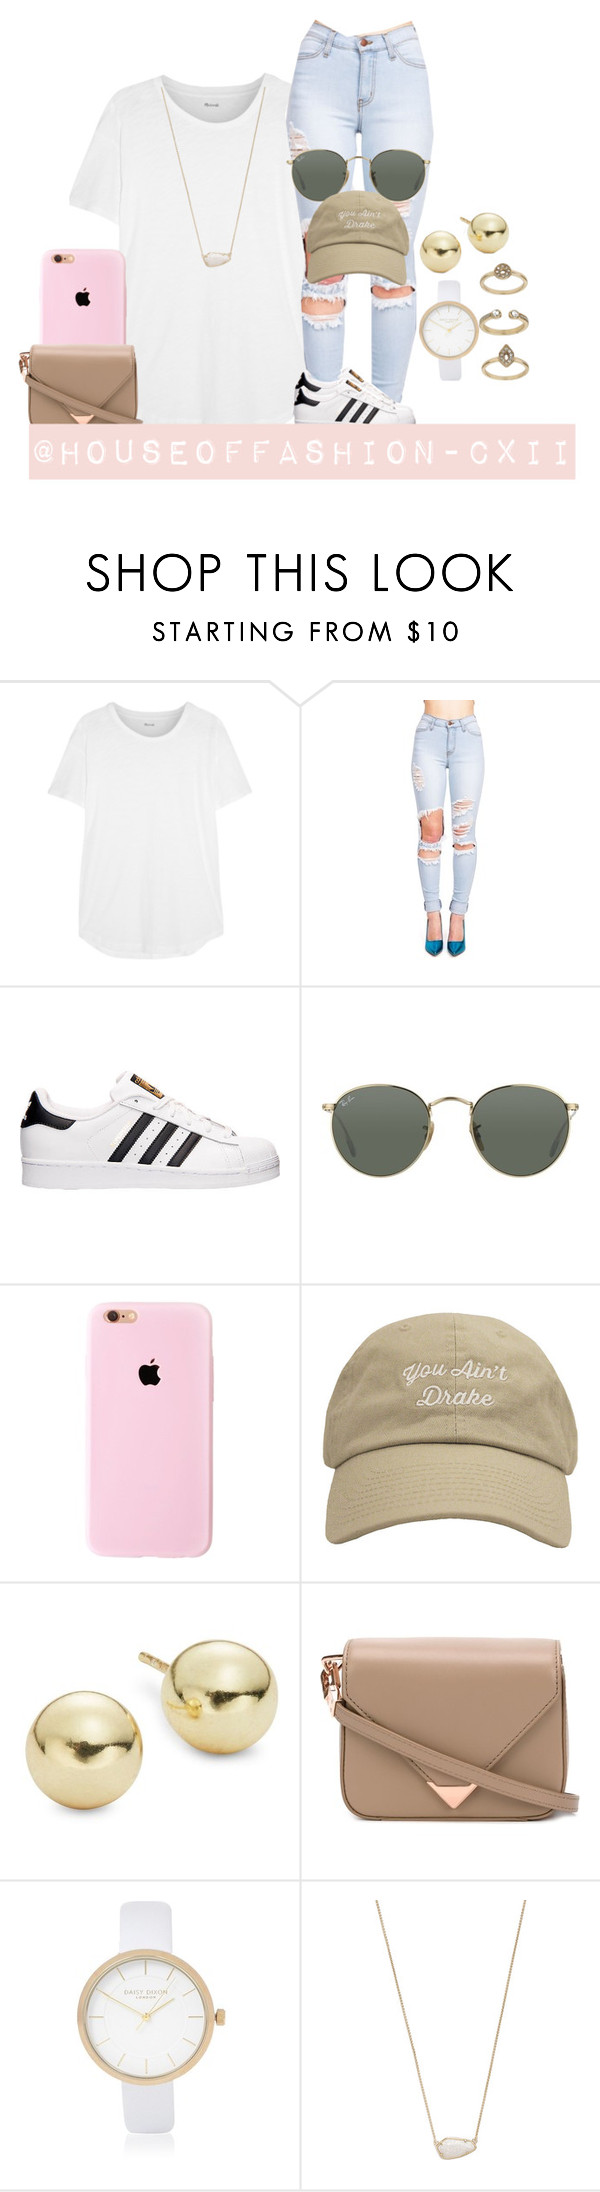 """you ain't drake??"" by houseoffashion-cxii ❤ liked on Polyvore featuring Madewell, adidas, Ray-Ban, Lord & Taylor, Alexander Wang, River Island, Kendra Scott and Topshop"